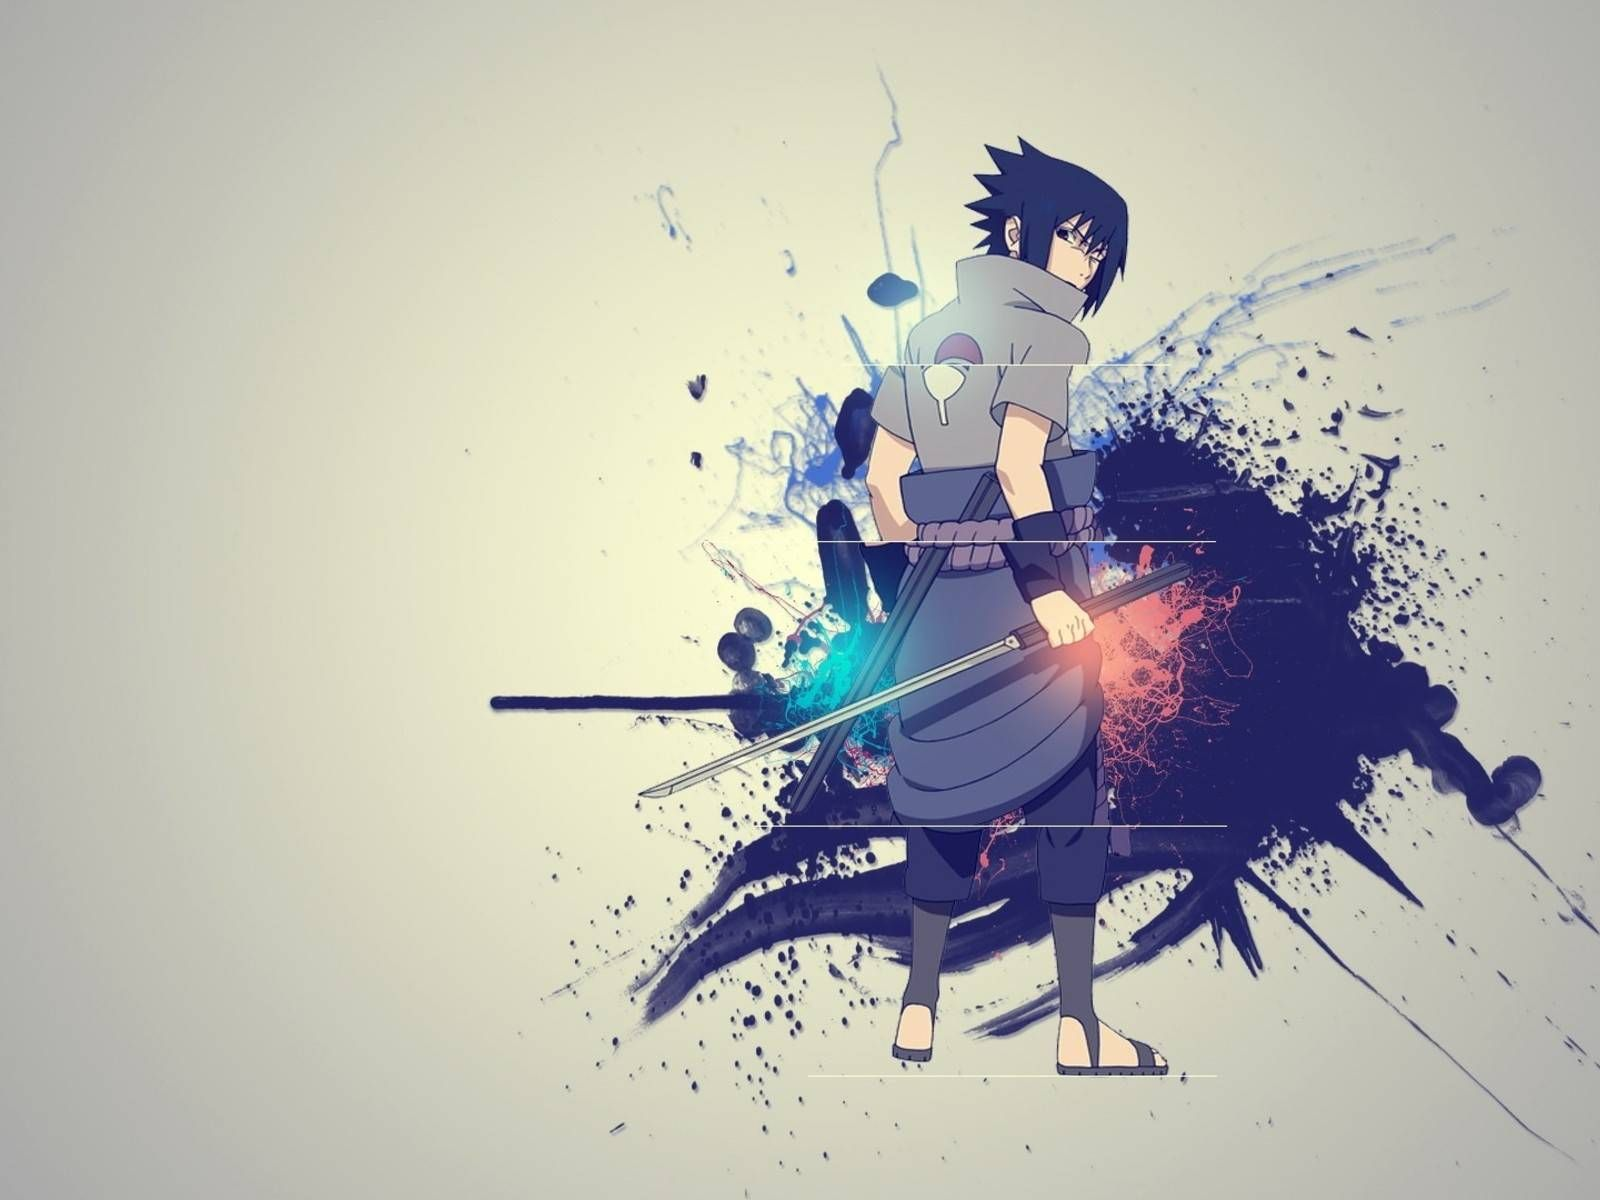 Sasuke uchiha wallpaper hd naruto wallpaper best animes ever sasuke uchiha wallpaper hd naruto wallpaper voltagebd Image collections